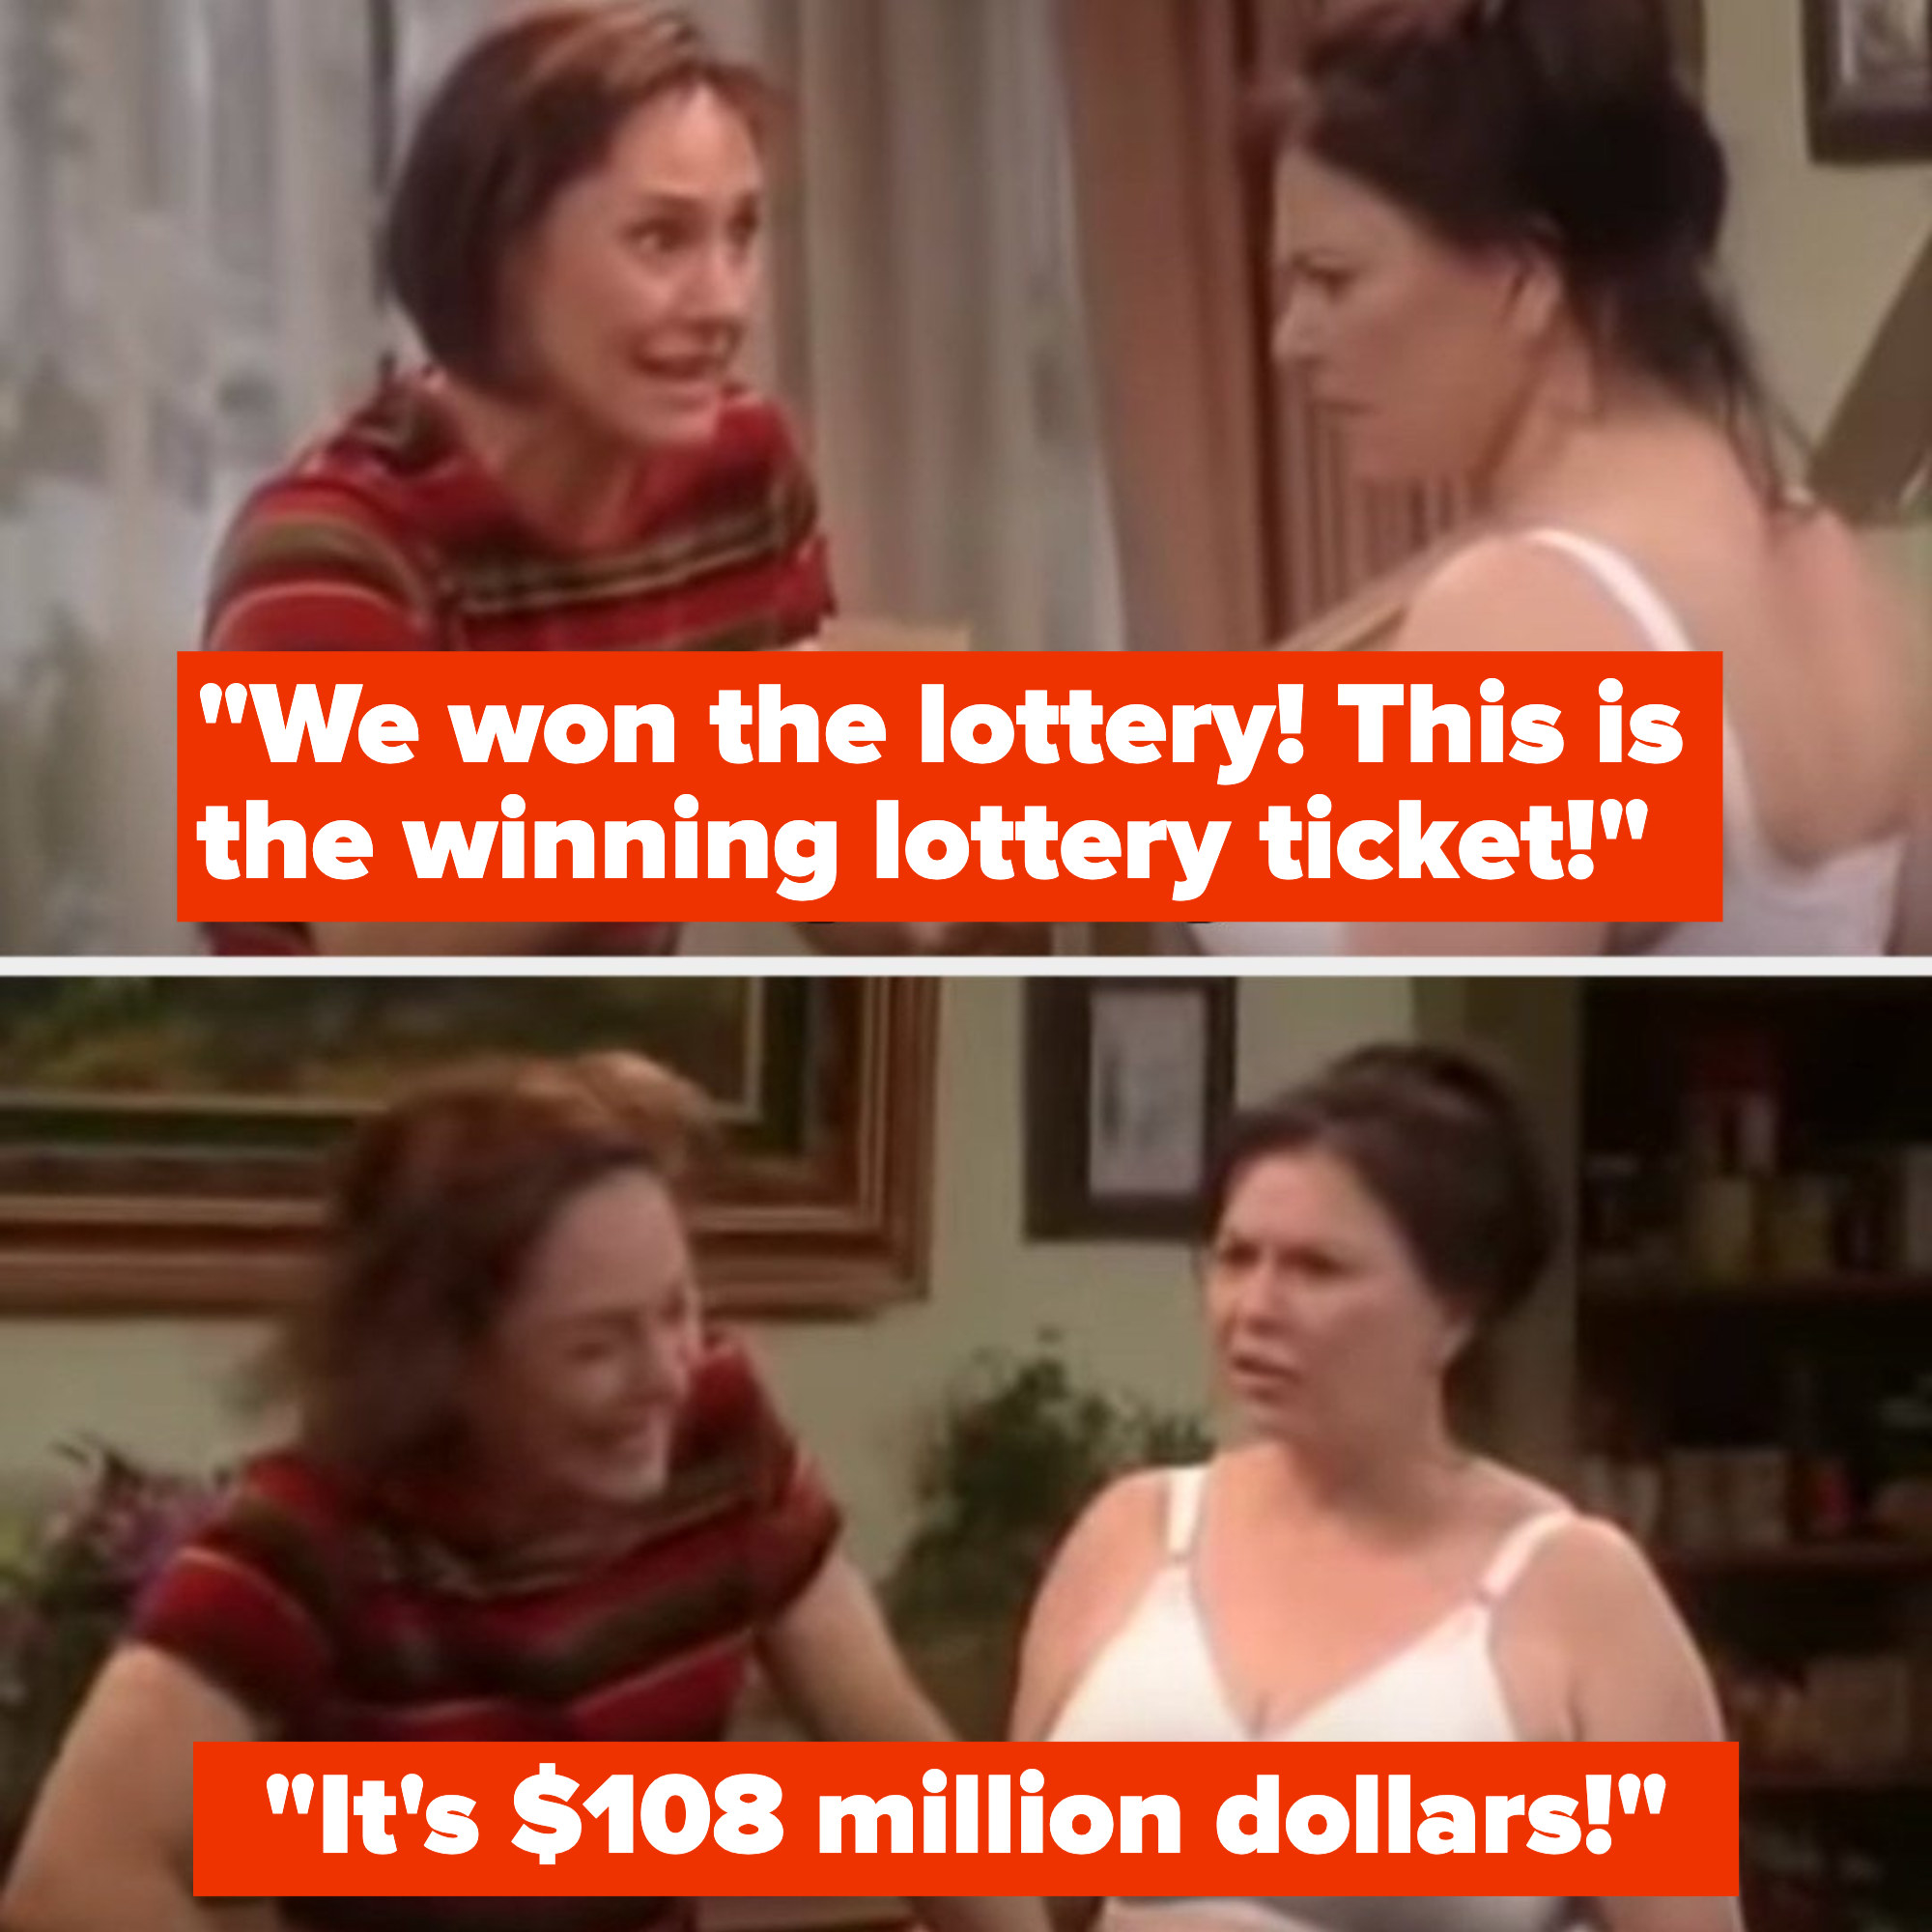 Jackie tells Roseanne that they won 108 million dollars in the lottery